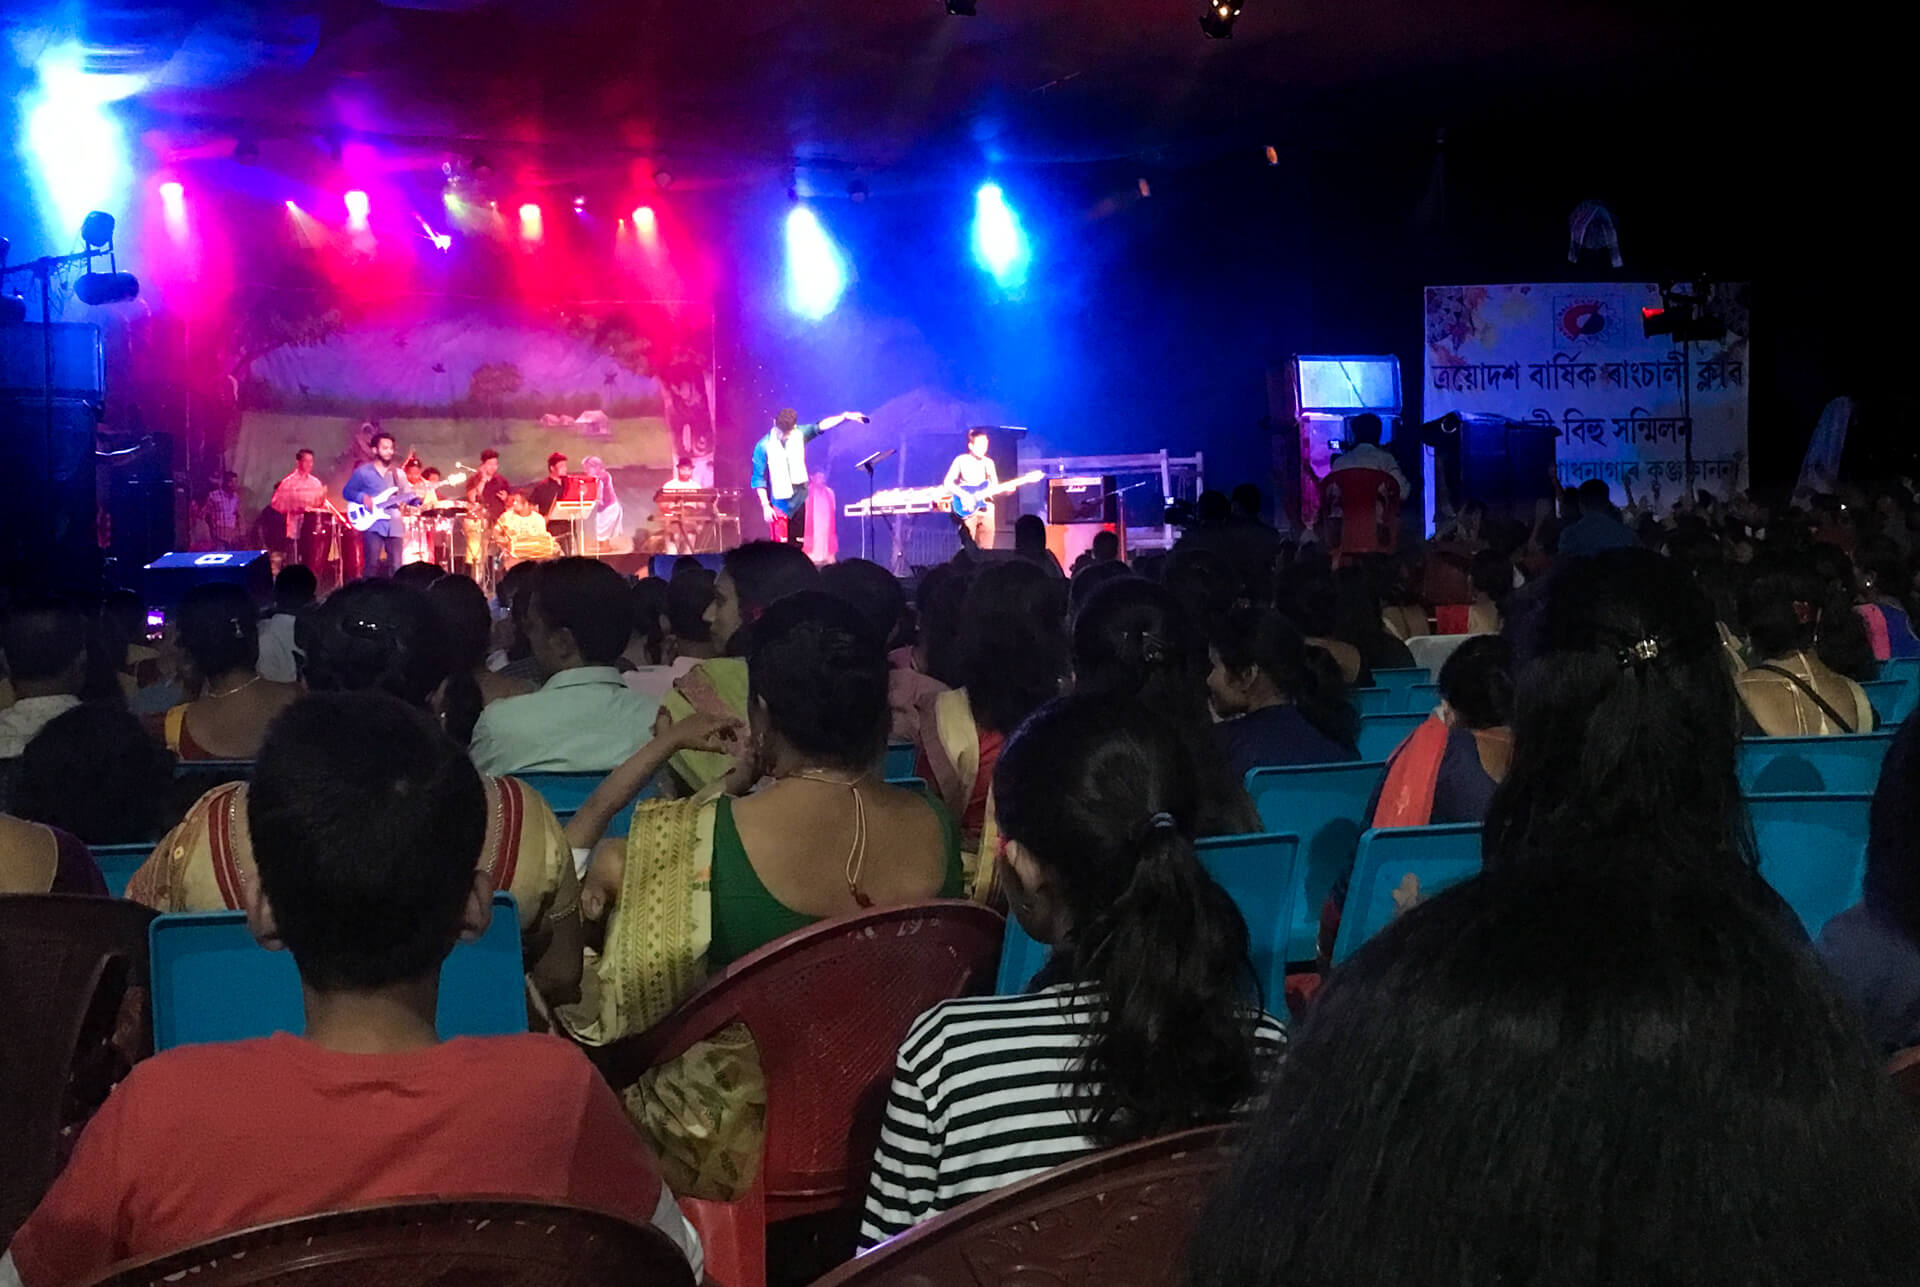 Musicians on stage during a Bihu festival performance.